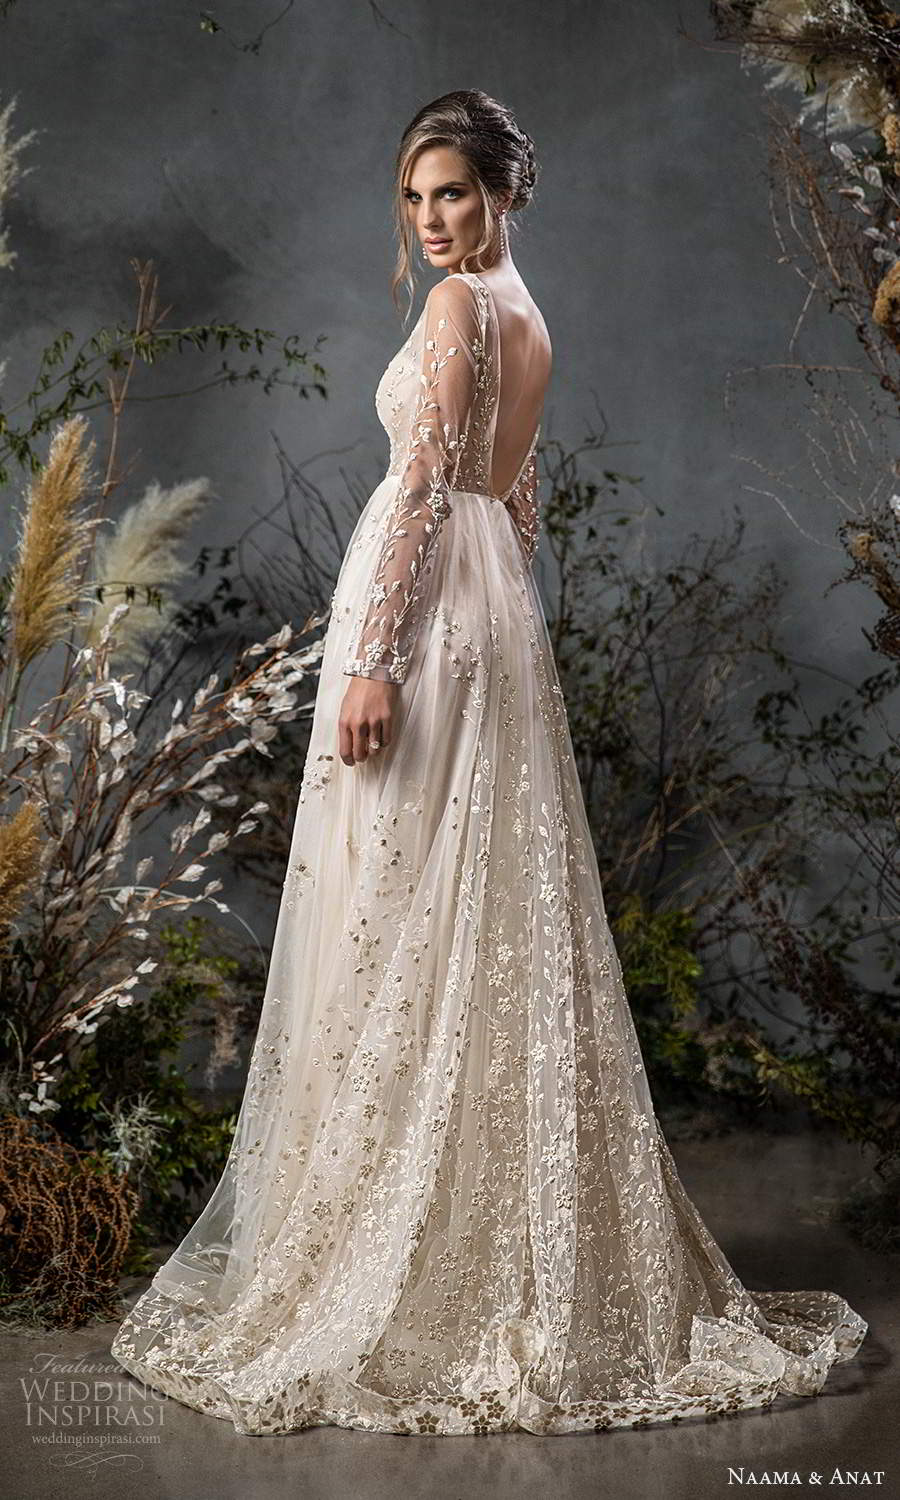 naama anat fall 2020 bridal illusion long sleeves plunging v neckline fully embellished a line ball gown wedding dress scoop back chapel train (6) mv